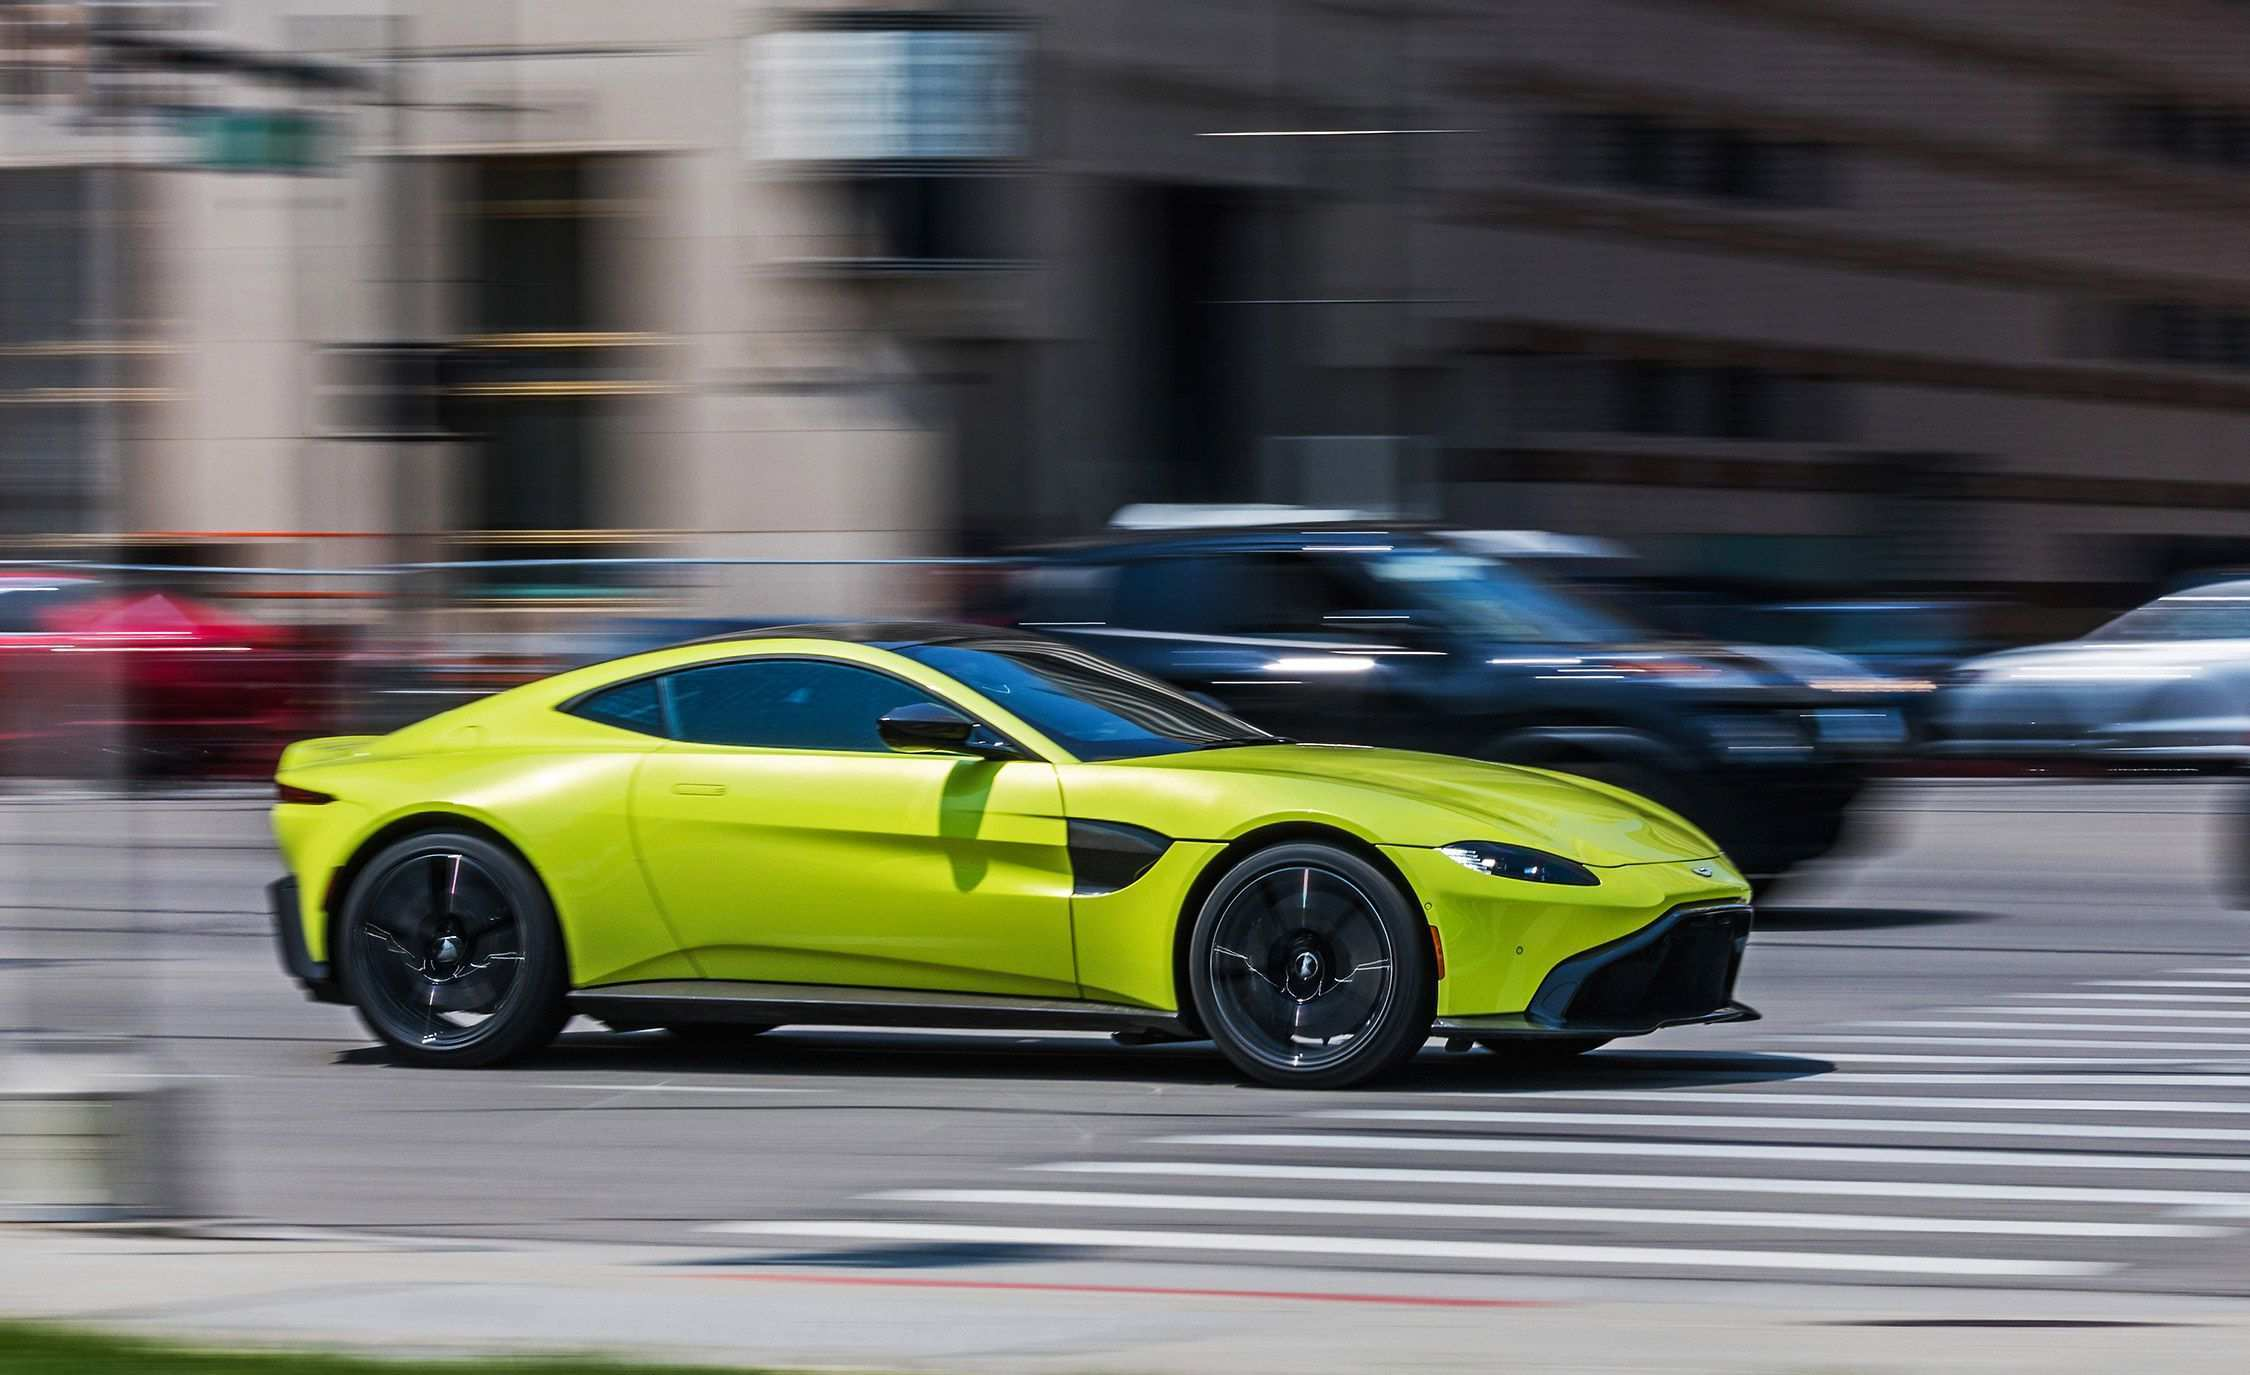 12 Gallery of 2019 Aston Martin Vantage Predictably Stunning New Review for 2019 Aston Martin Vantage Predictably Stunning